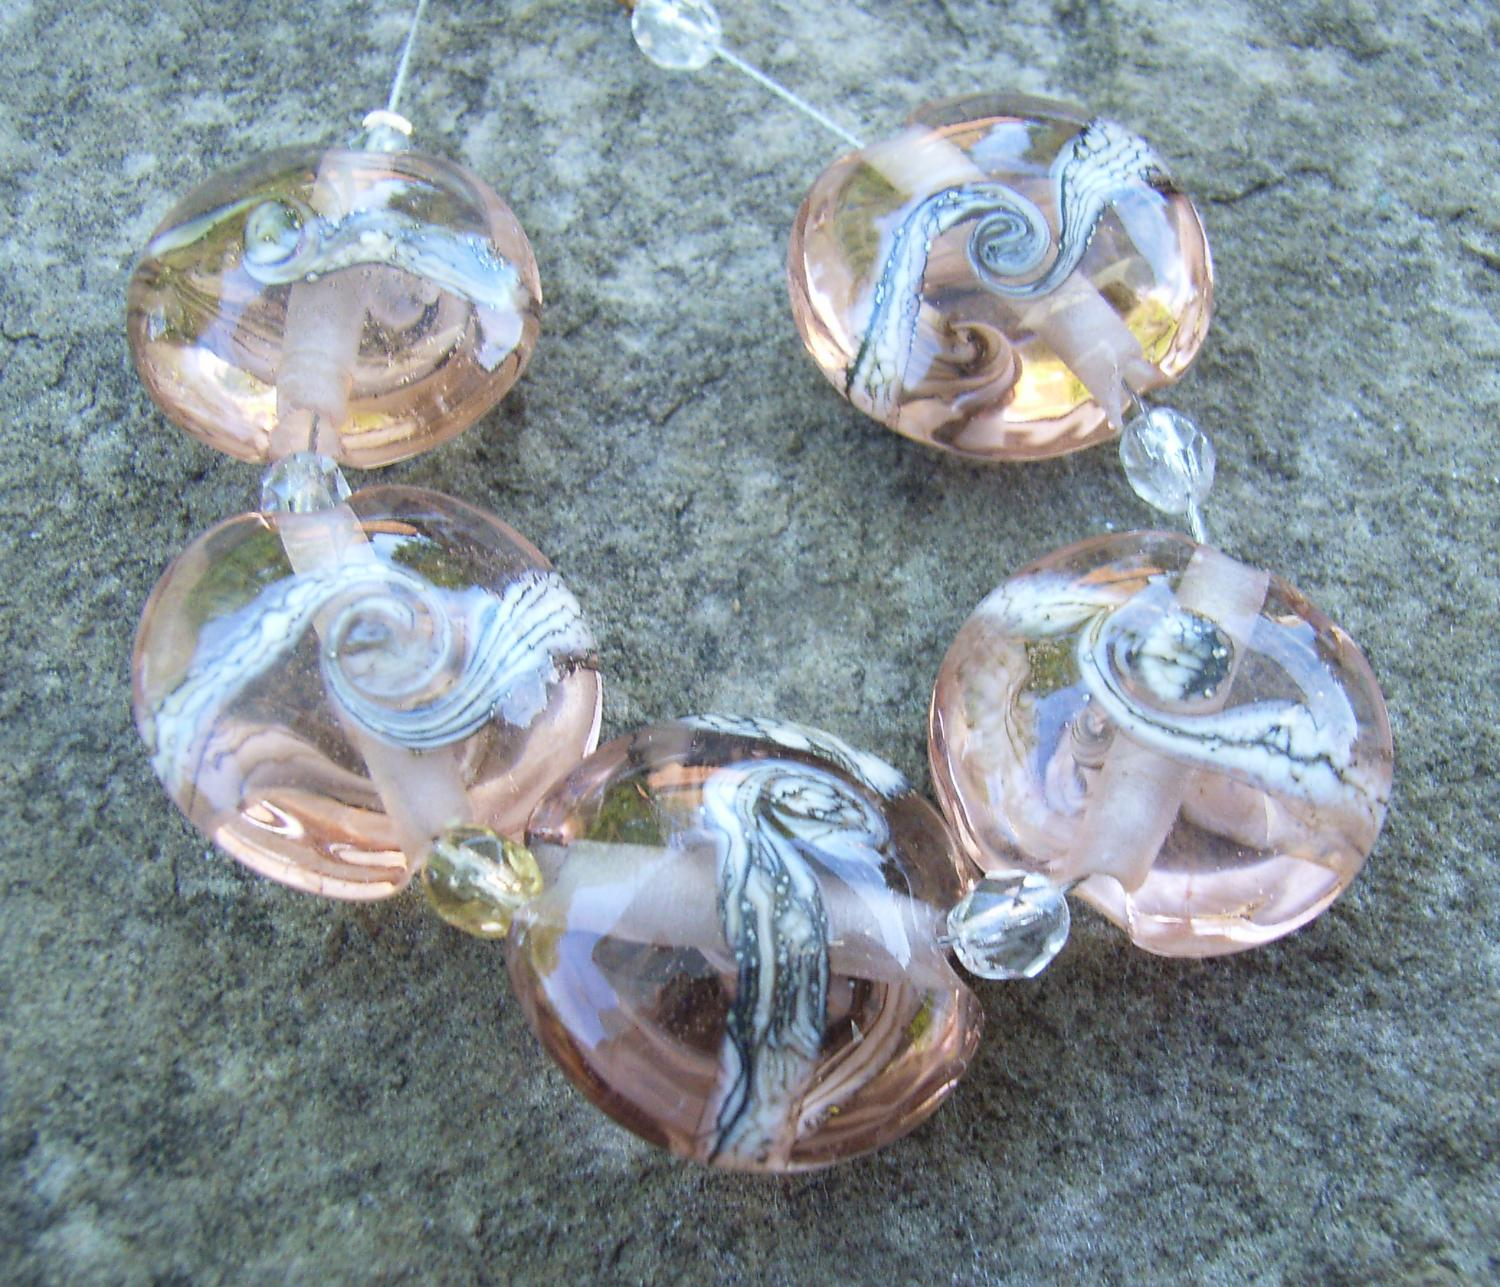 Silvered Ivory Swirl 18mm Peach Lentil Handmade Artisan Glass Lampwork Beads - By the Bead, (Made to Order) 2